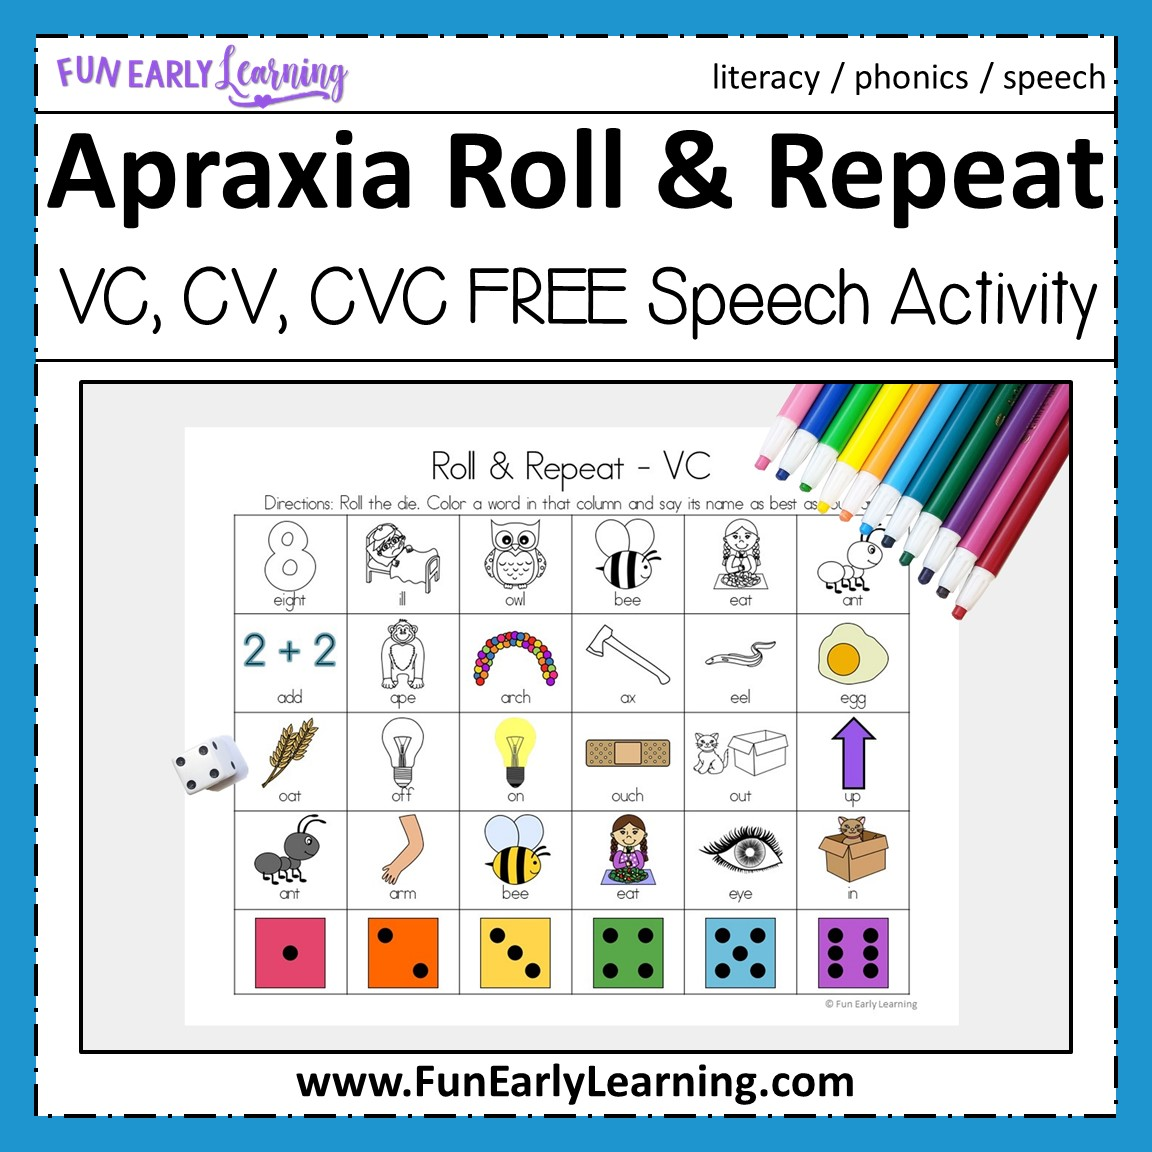 photograph regarding Free Printable Speech Therapy Materials referred to as Apraxia Roll and Repeat for VC, CV, and CVC text for speech